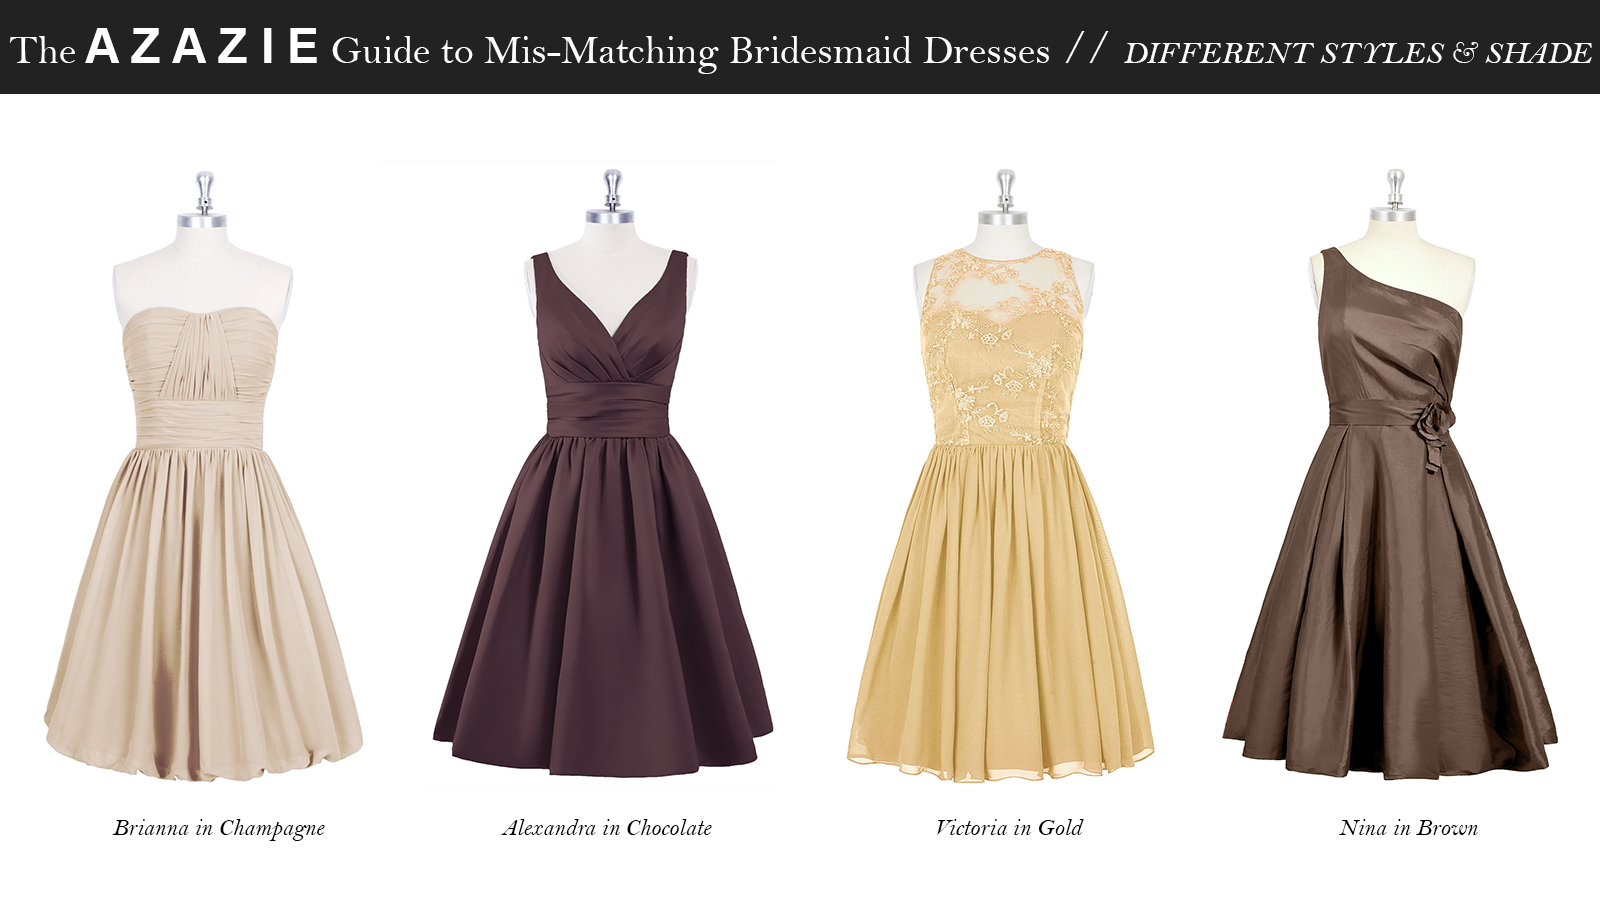 AZAZIE_Guide_MisMatching_Bridesmaid_Dresses_Different_Styles_and_Shade